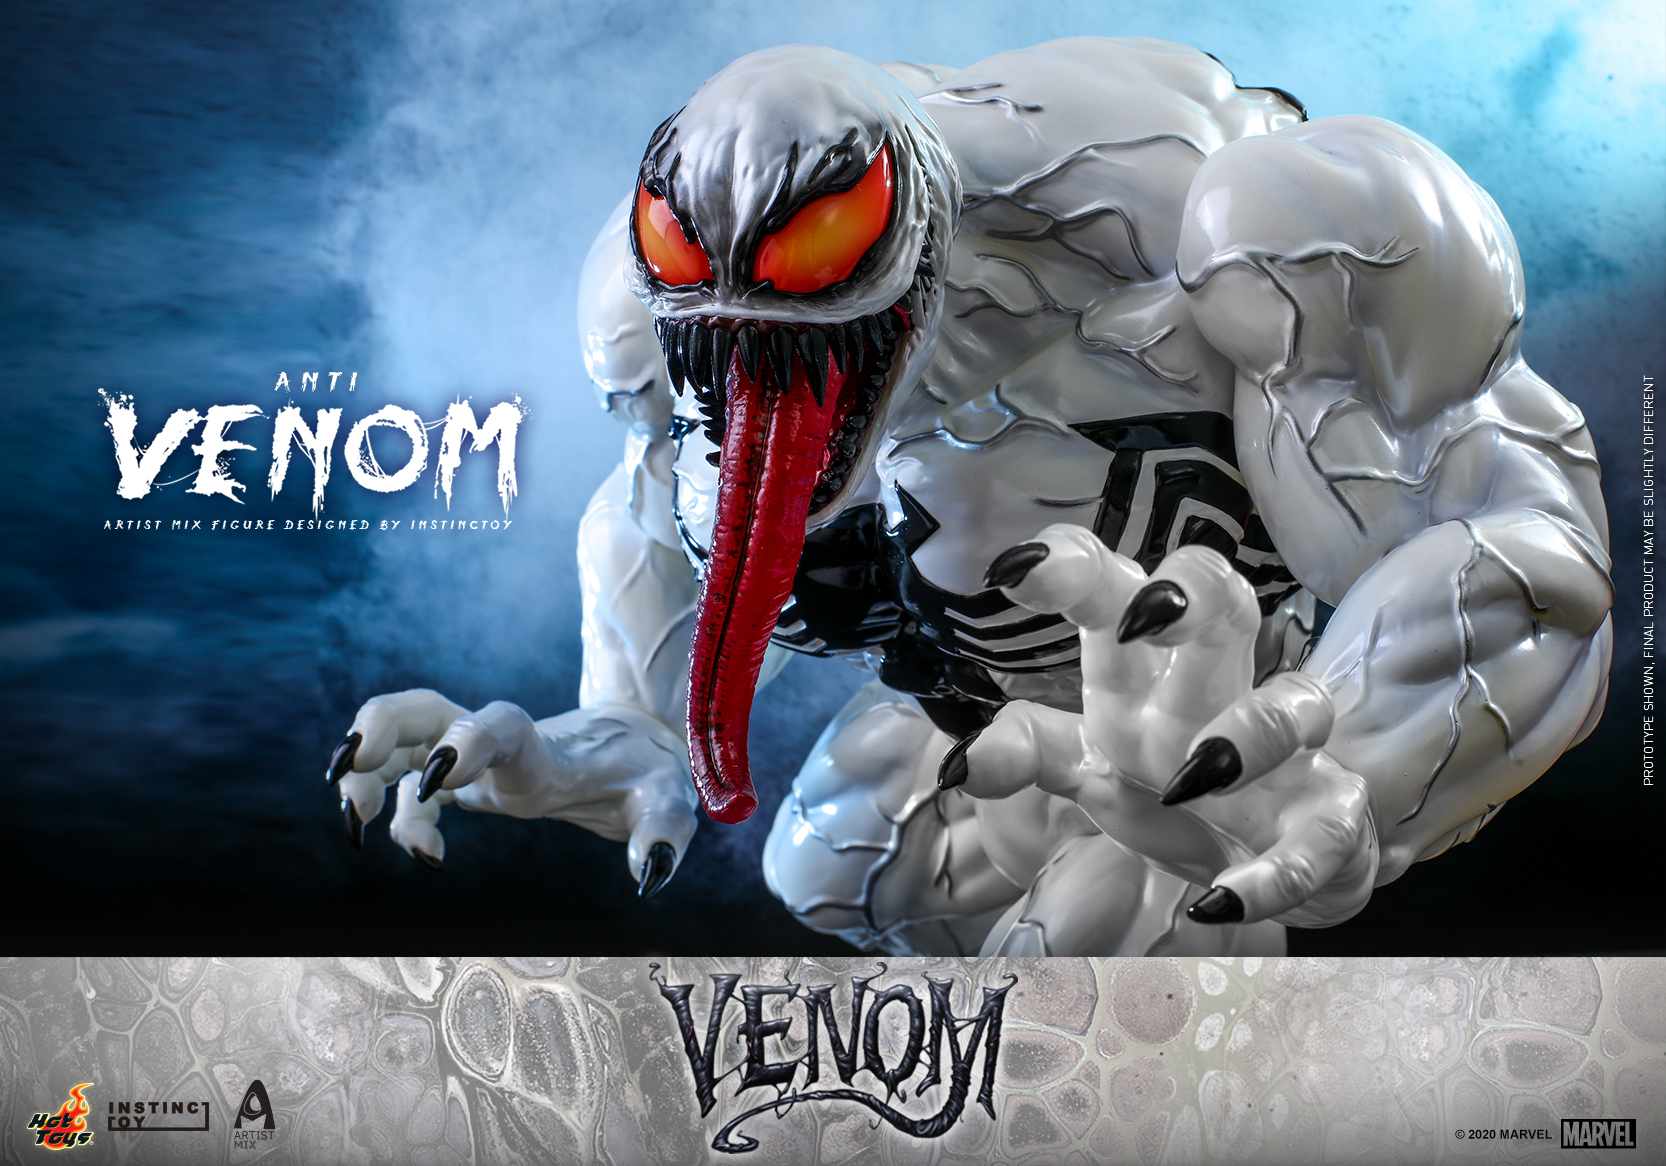 Hot Toys - Venom (Comic) - Anti Venom Artist Mix Designed by INSTINCTOY_PR10